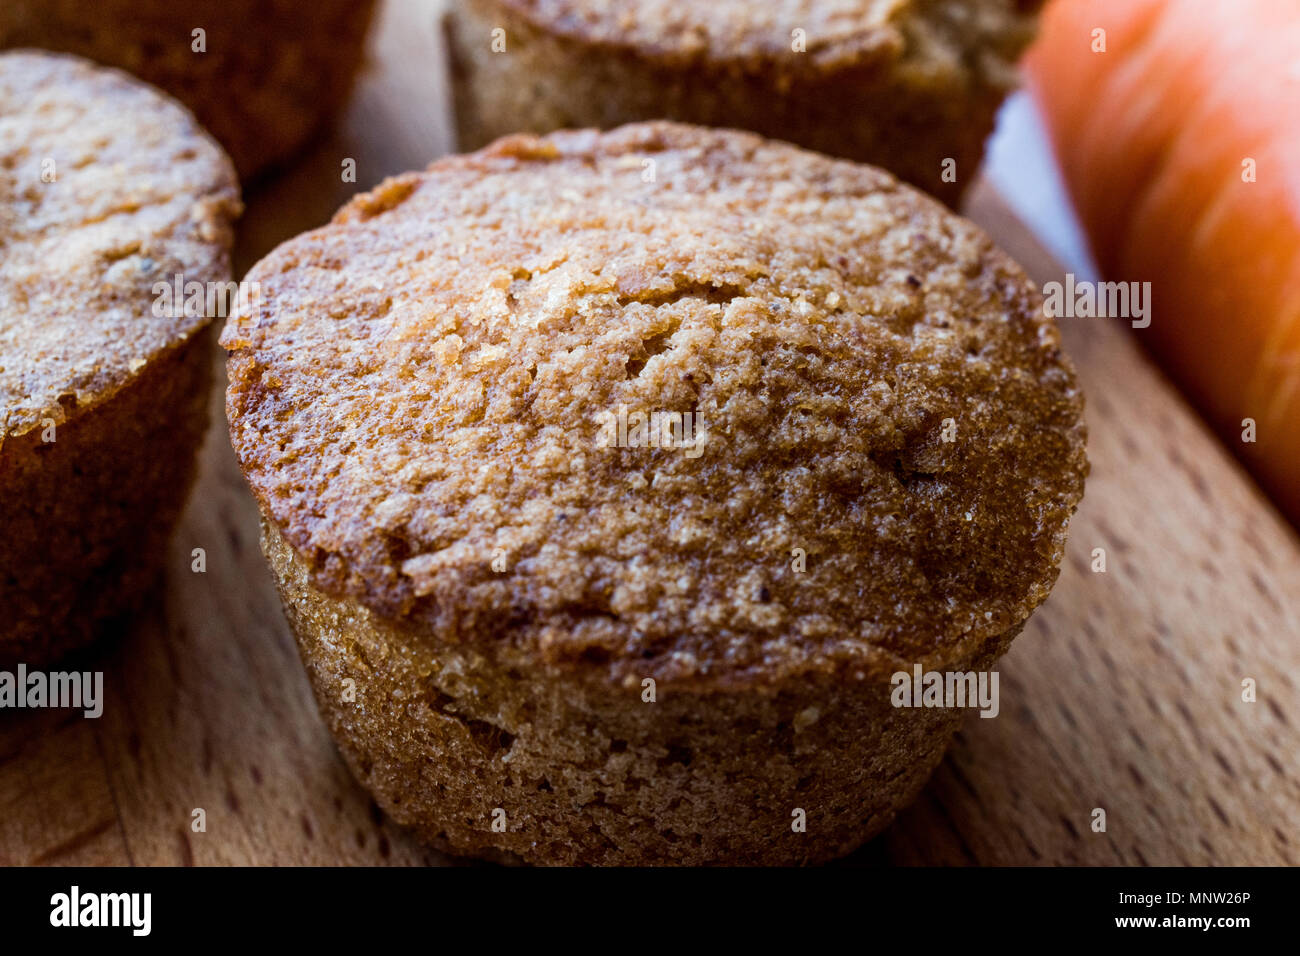 Mini Cakes with Carrot and Cinnamon. Dessert Concept. - Stock Image